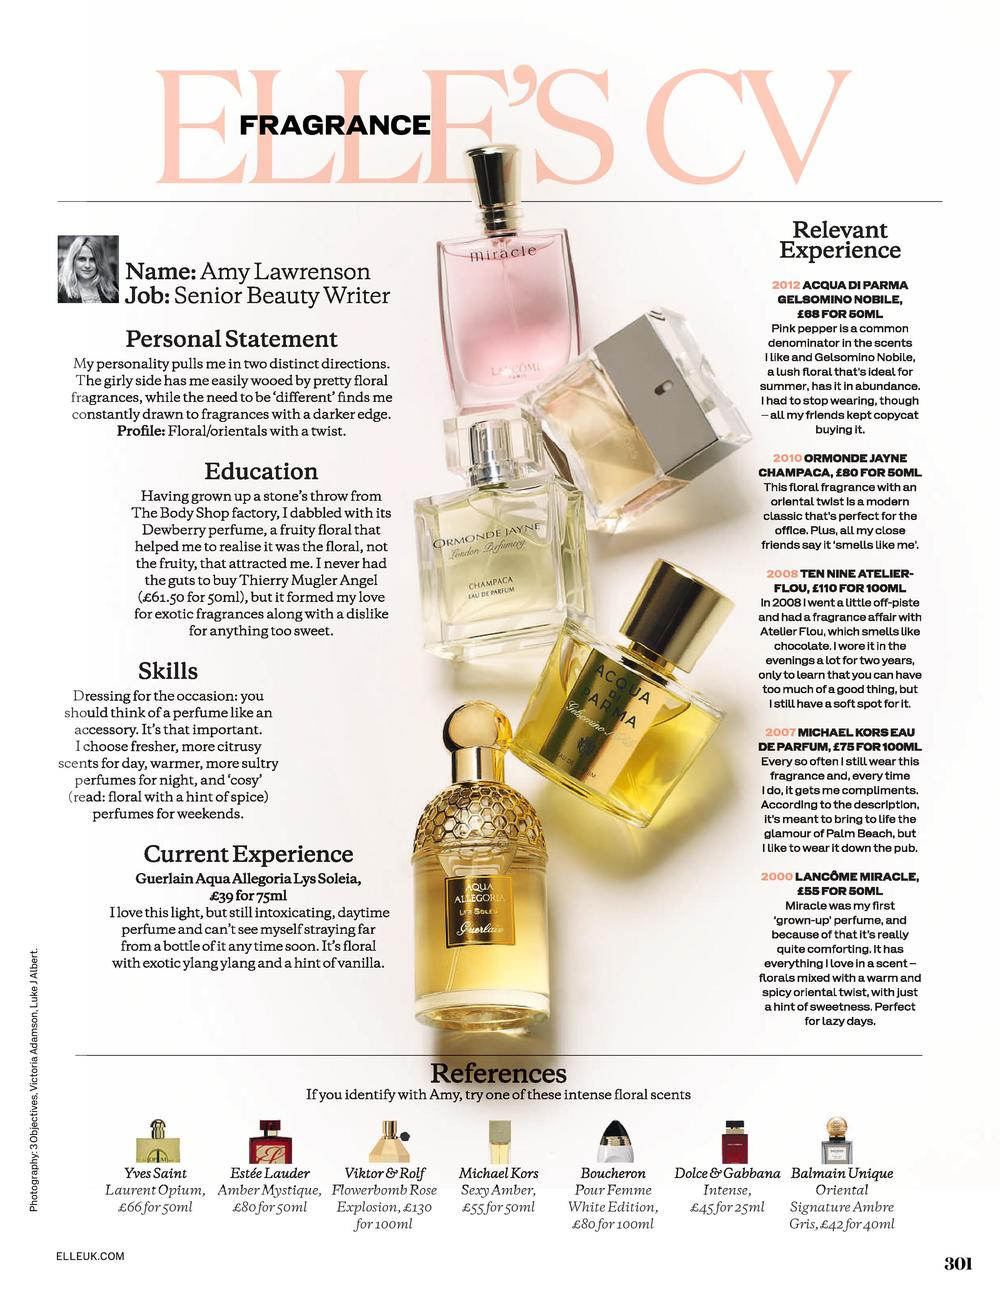 ELLE's Fragrance CV